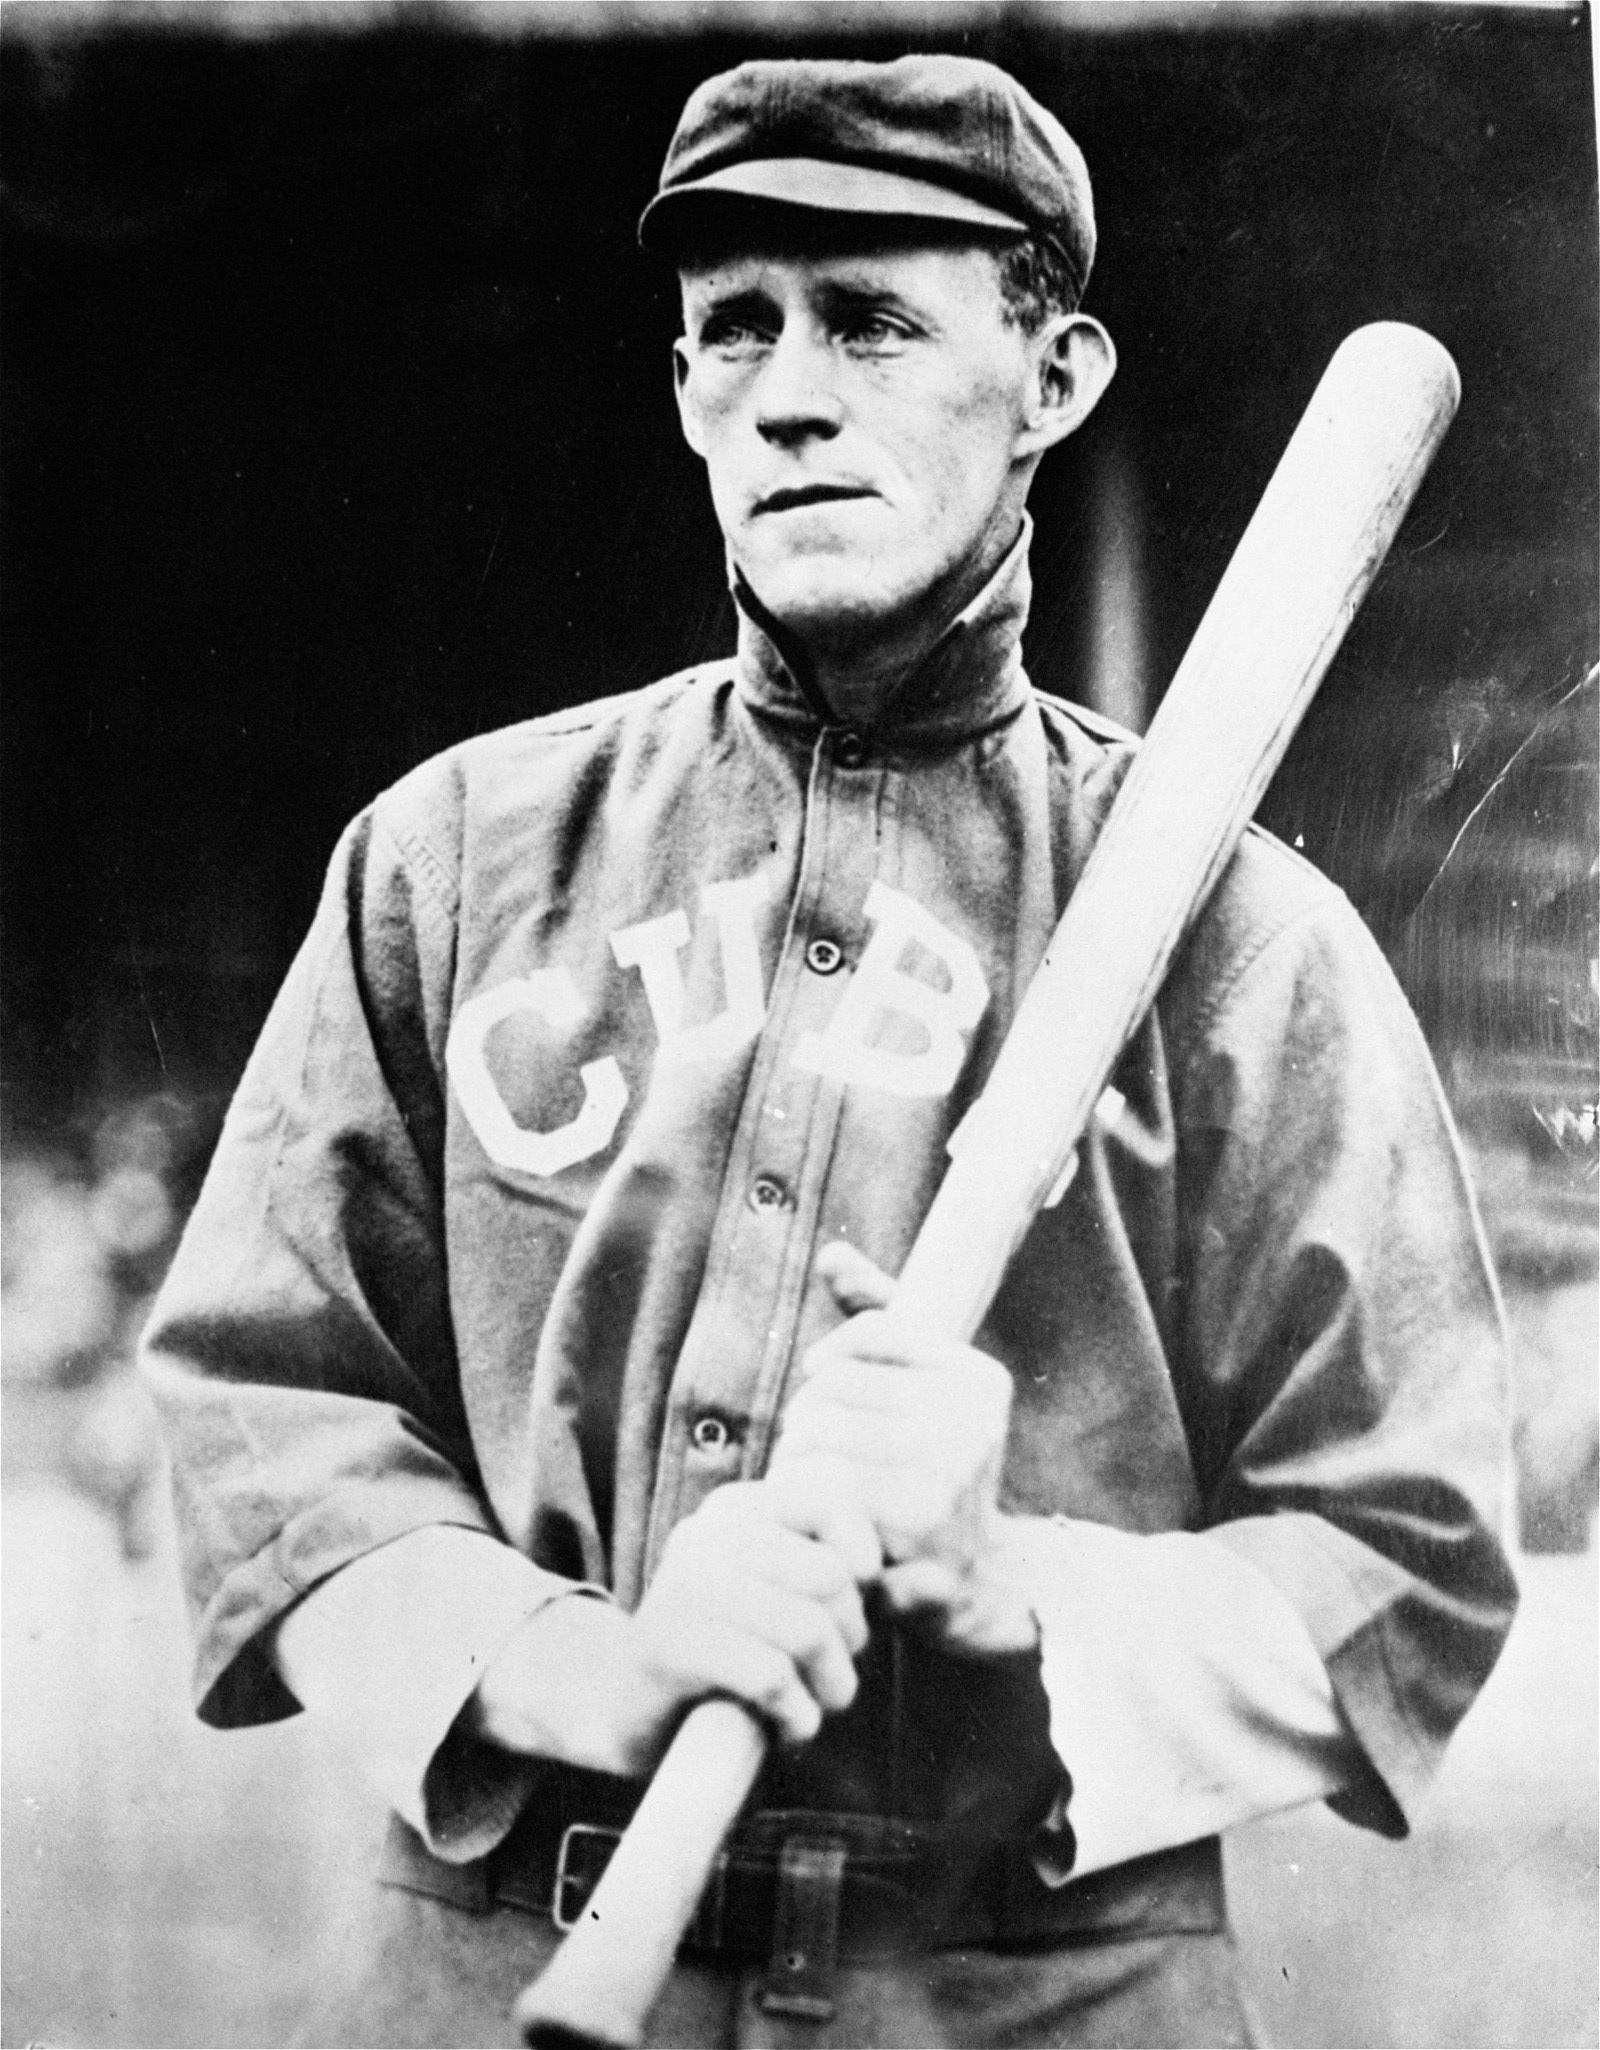 FILE - This is an undated file photo showing Chicago Cubs' Johnny Evers. Some Cubs fans are hopping they can break a 108-year-old World Series championship drought by leaving items at the New York grave of the middle man in the team's famed Tinker-to-Ever